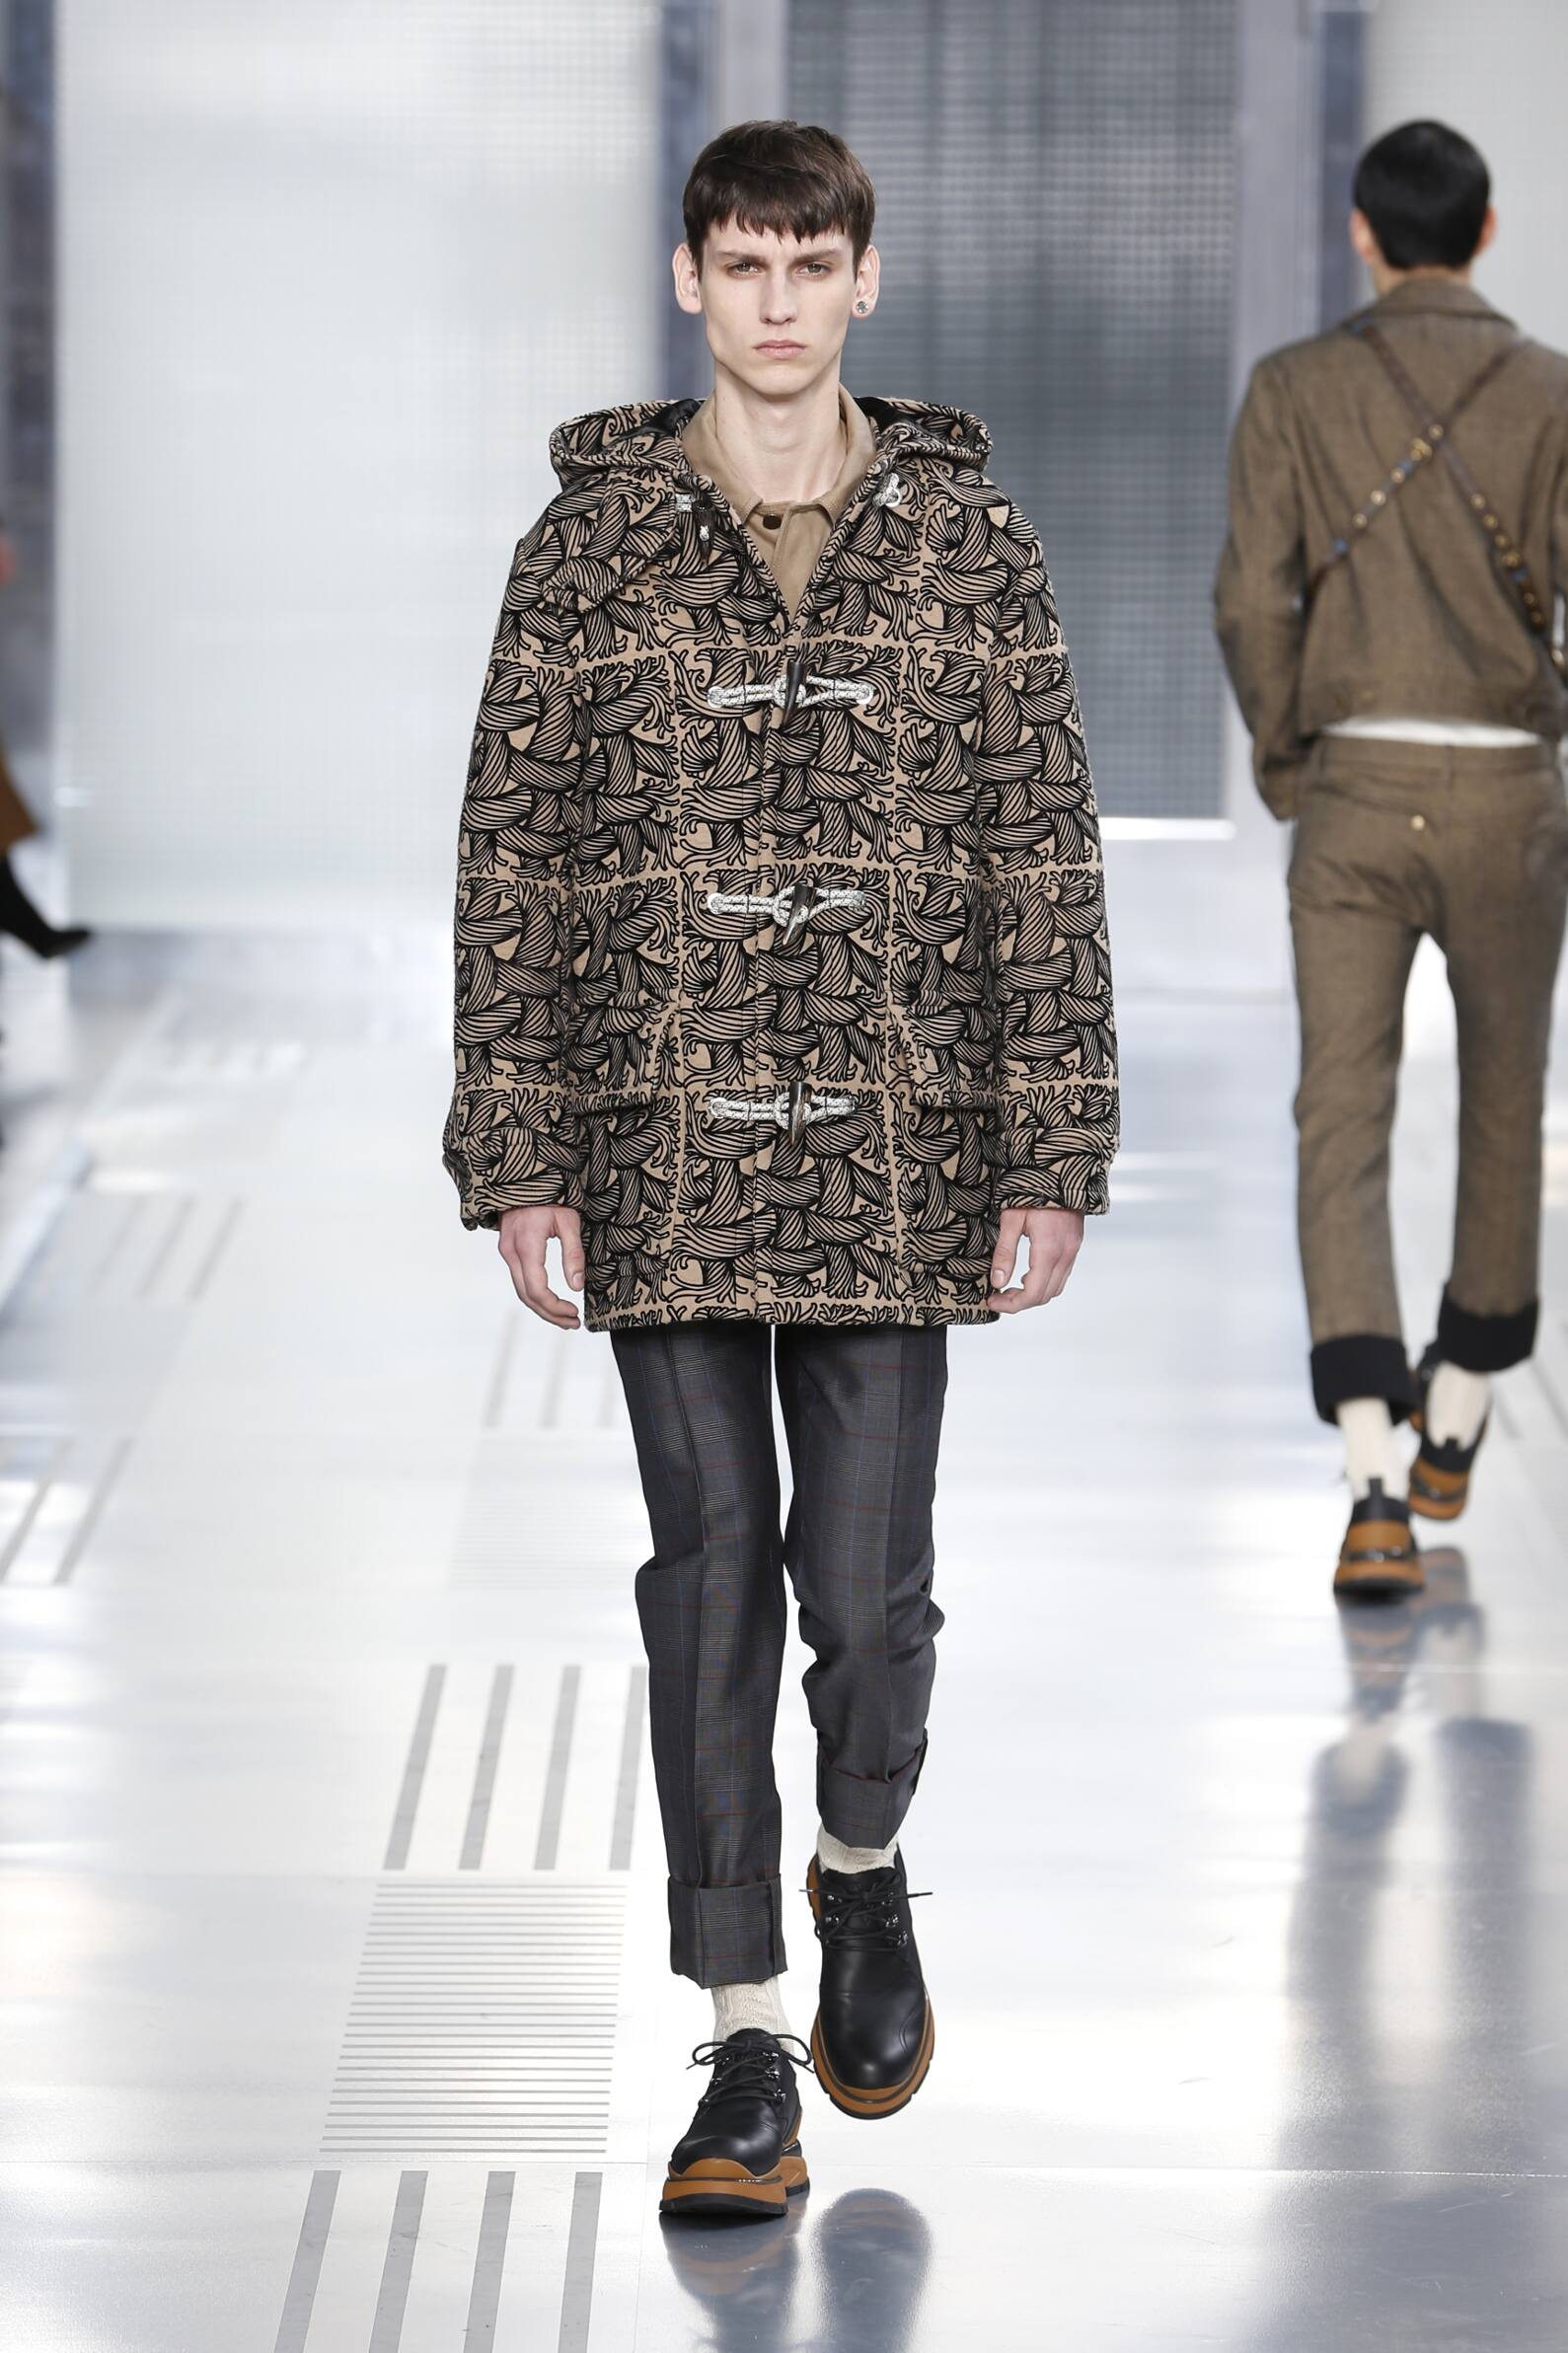 2016 Fall Fashion Man Louis Vuitton Collection